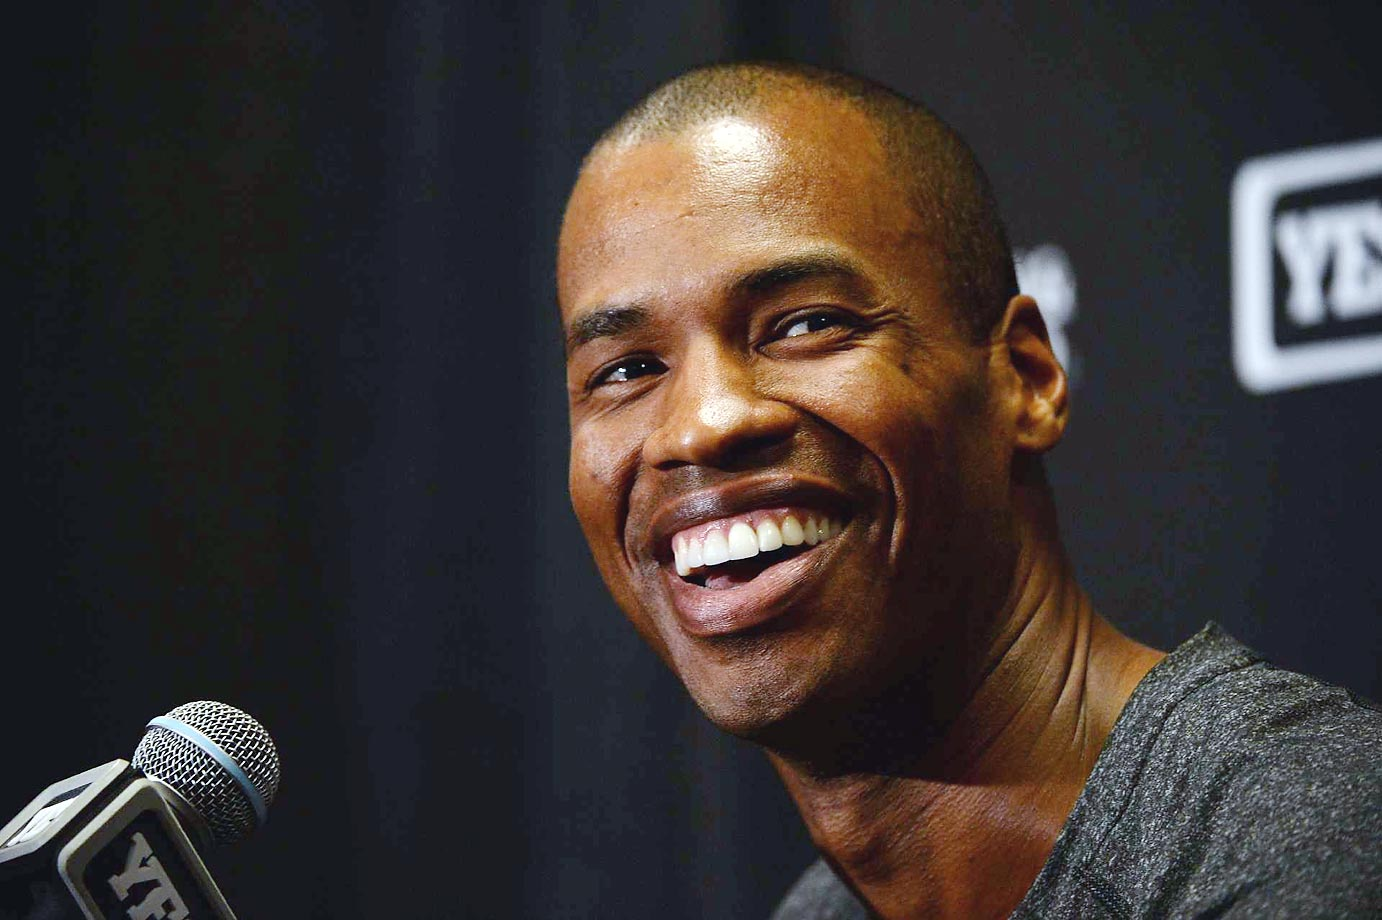 Jason Collins, the first openly gay man to play in the NBA, announced his retirement from the league on Nov. 19, 2014. He finished his career with 359 blocks, 2,706 rebounds and 2,621 points after being drafted 18th overall by New Jersey in 2001.